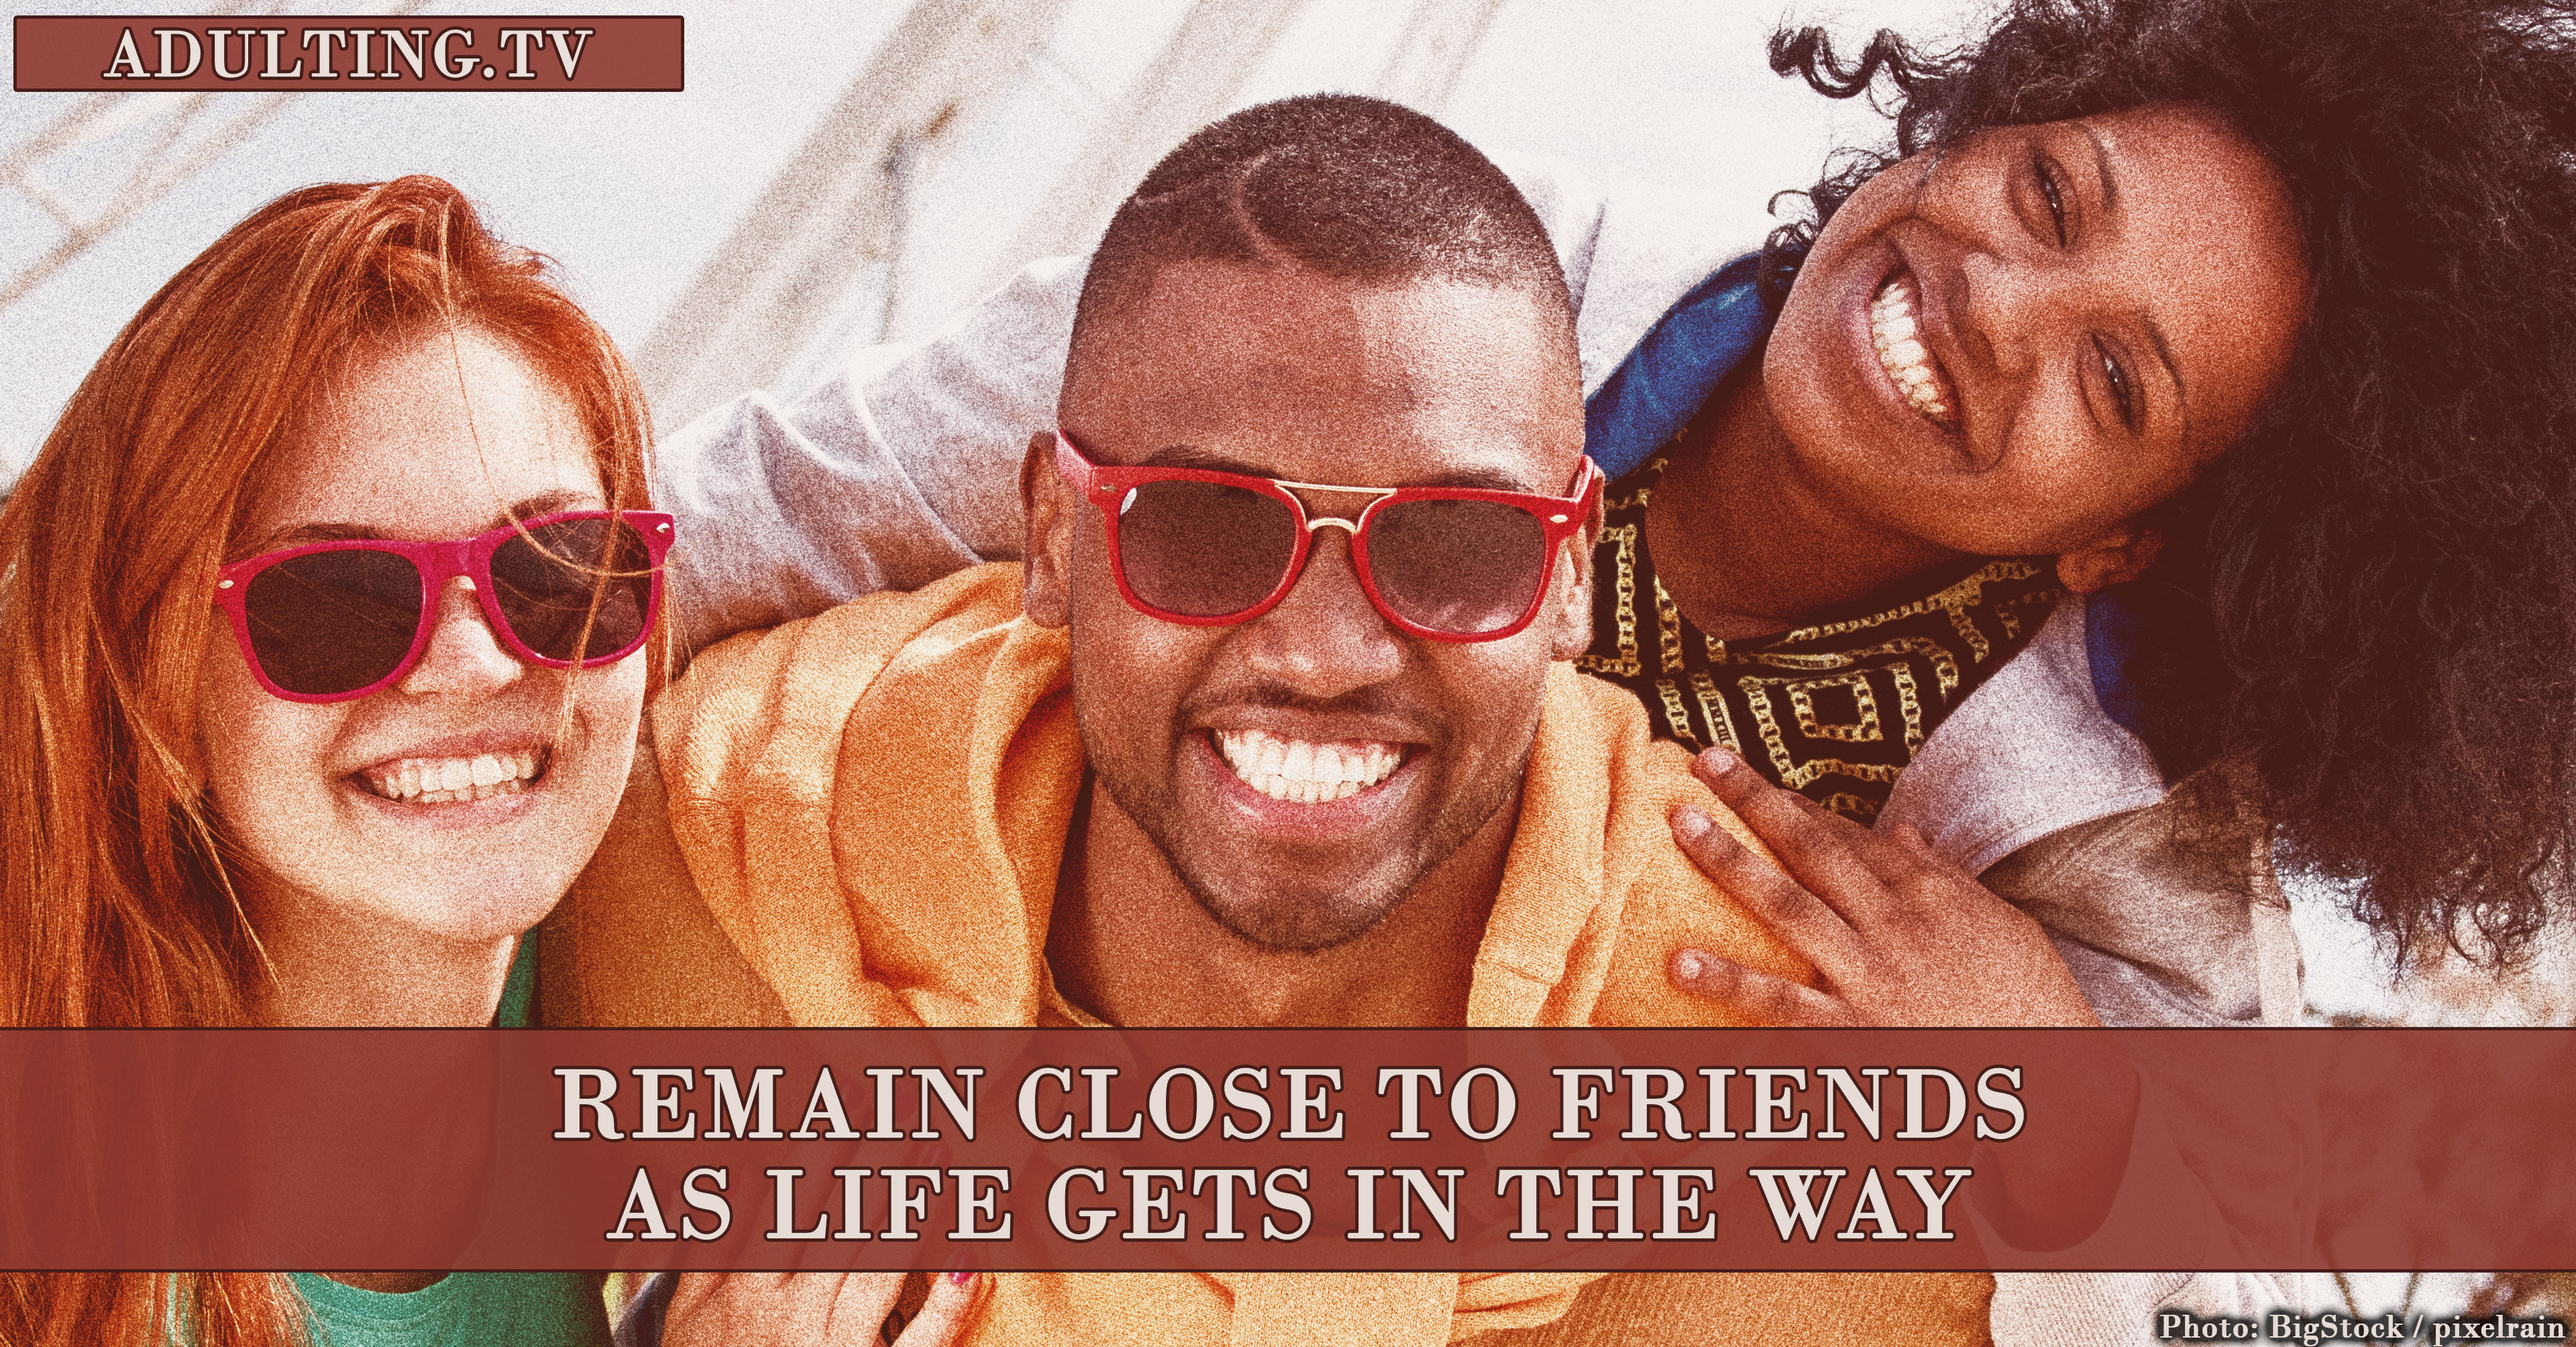 How to Remain Close to Friends as Life Gets in the Way